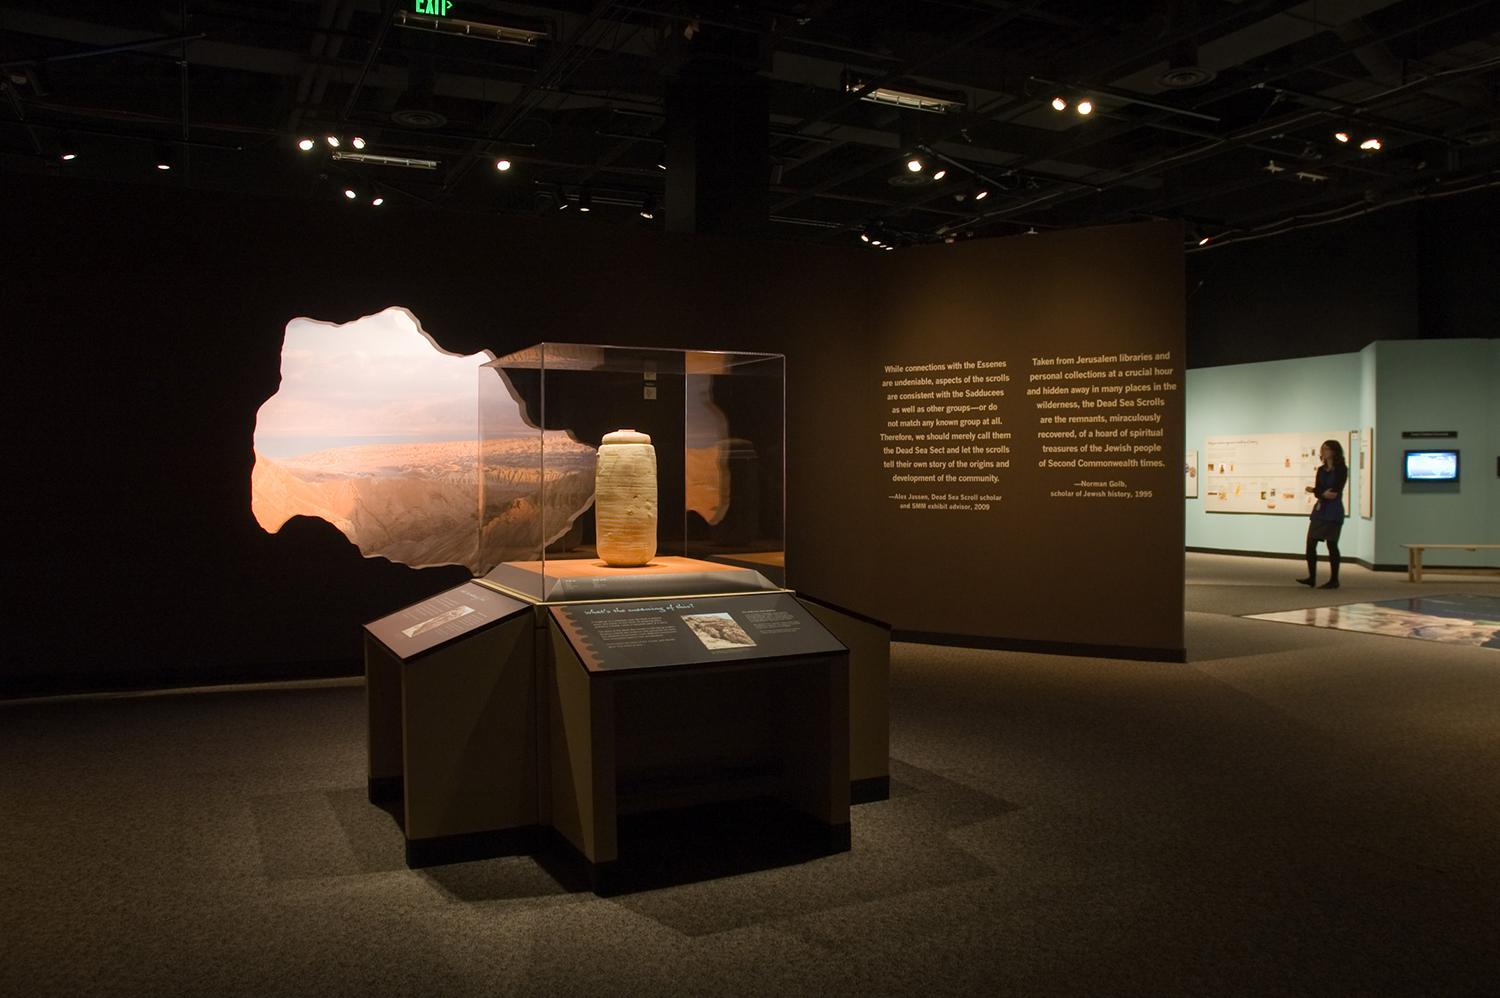 The Dead Sea Scrolls: Words that Changed the World